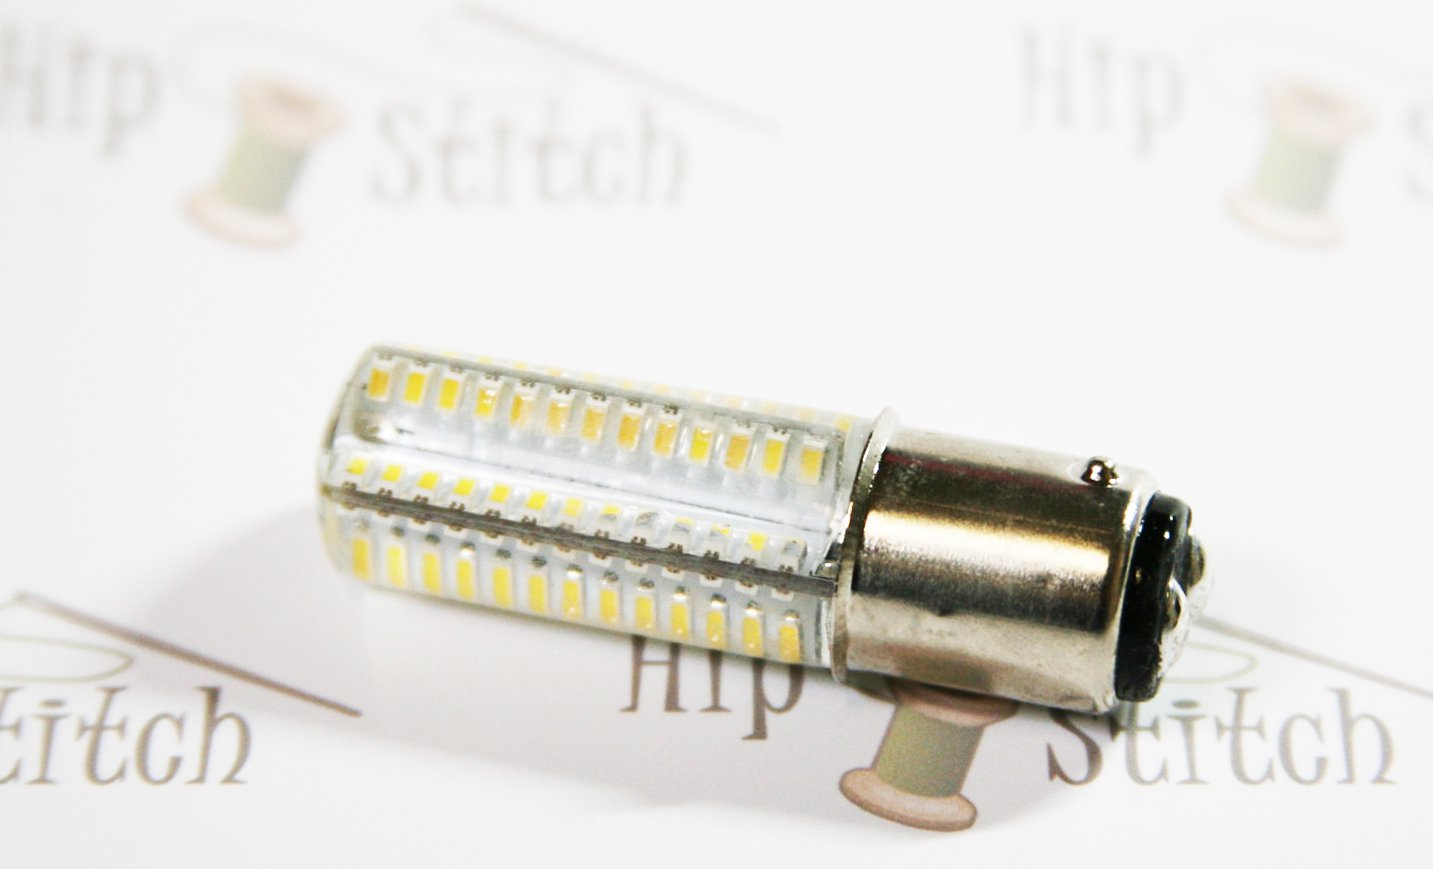 Singer Featherweight LED Light Bulb